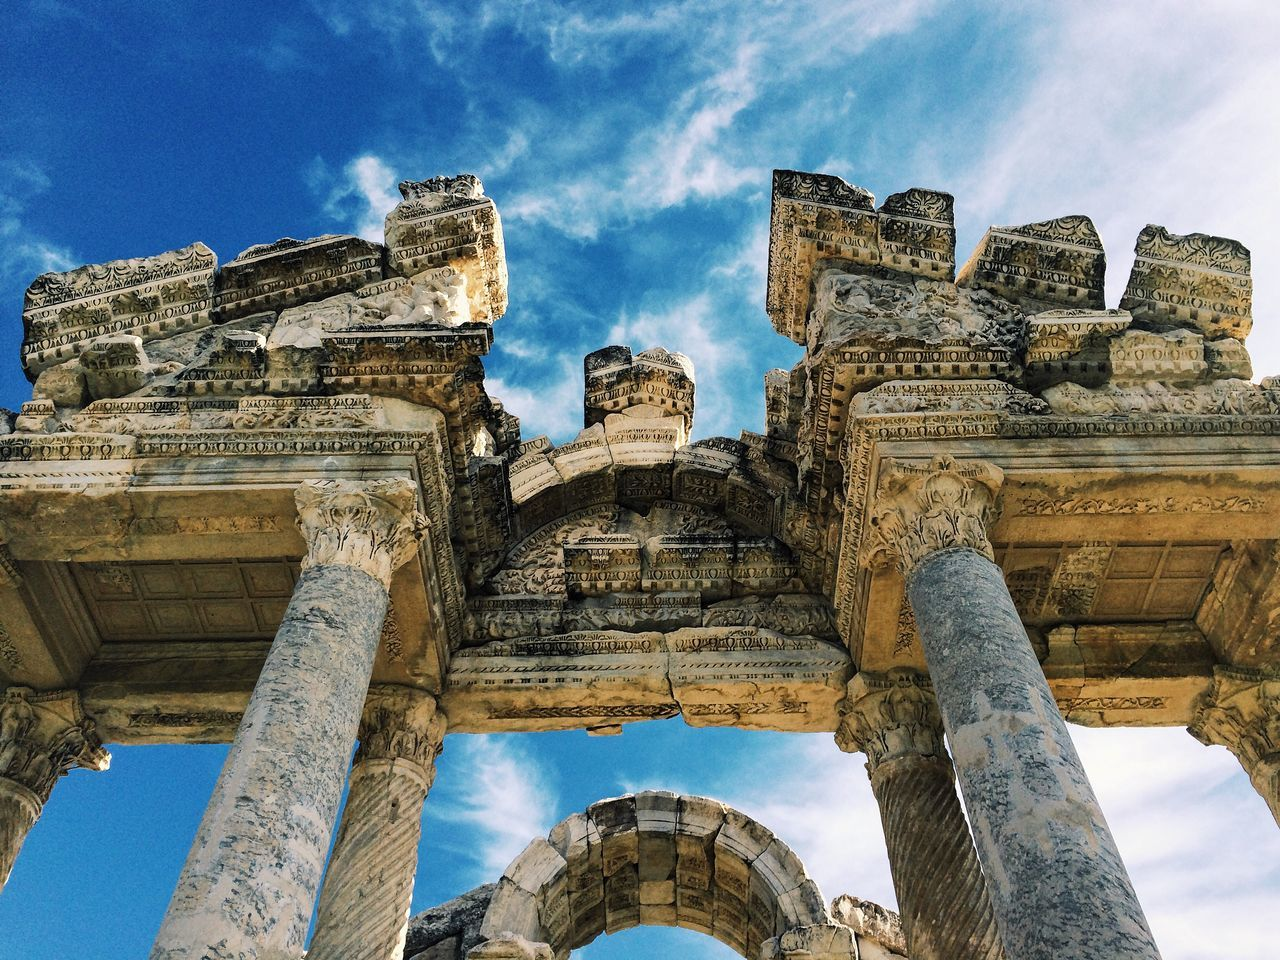 The Tetrapylon at the temple of Aphrodite at Aphrodisias. Turkey EyeEm Architecture Worldheritage Roman Ruins Aphrodisias  Exploring Sky